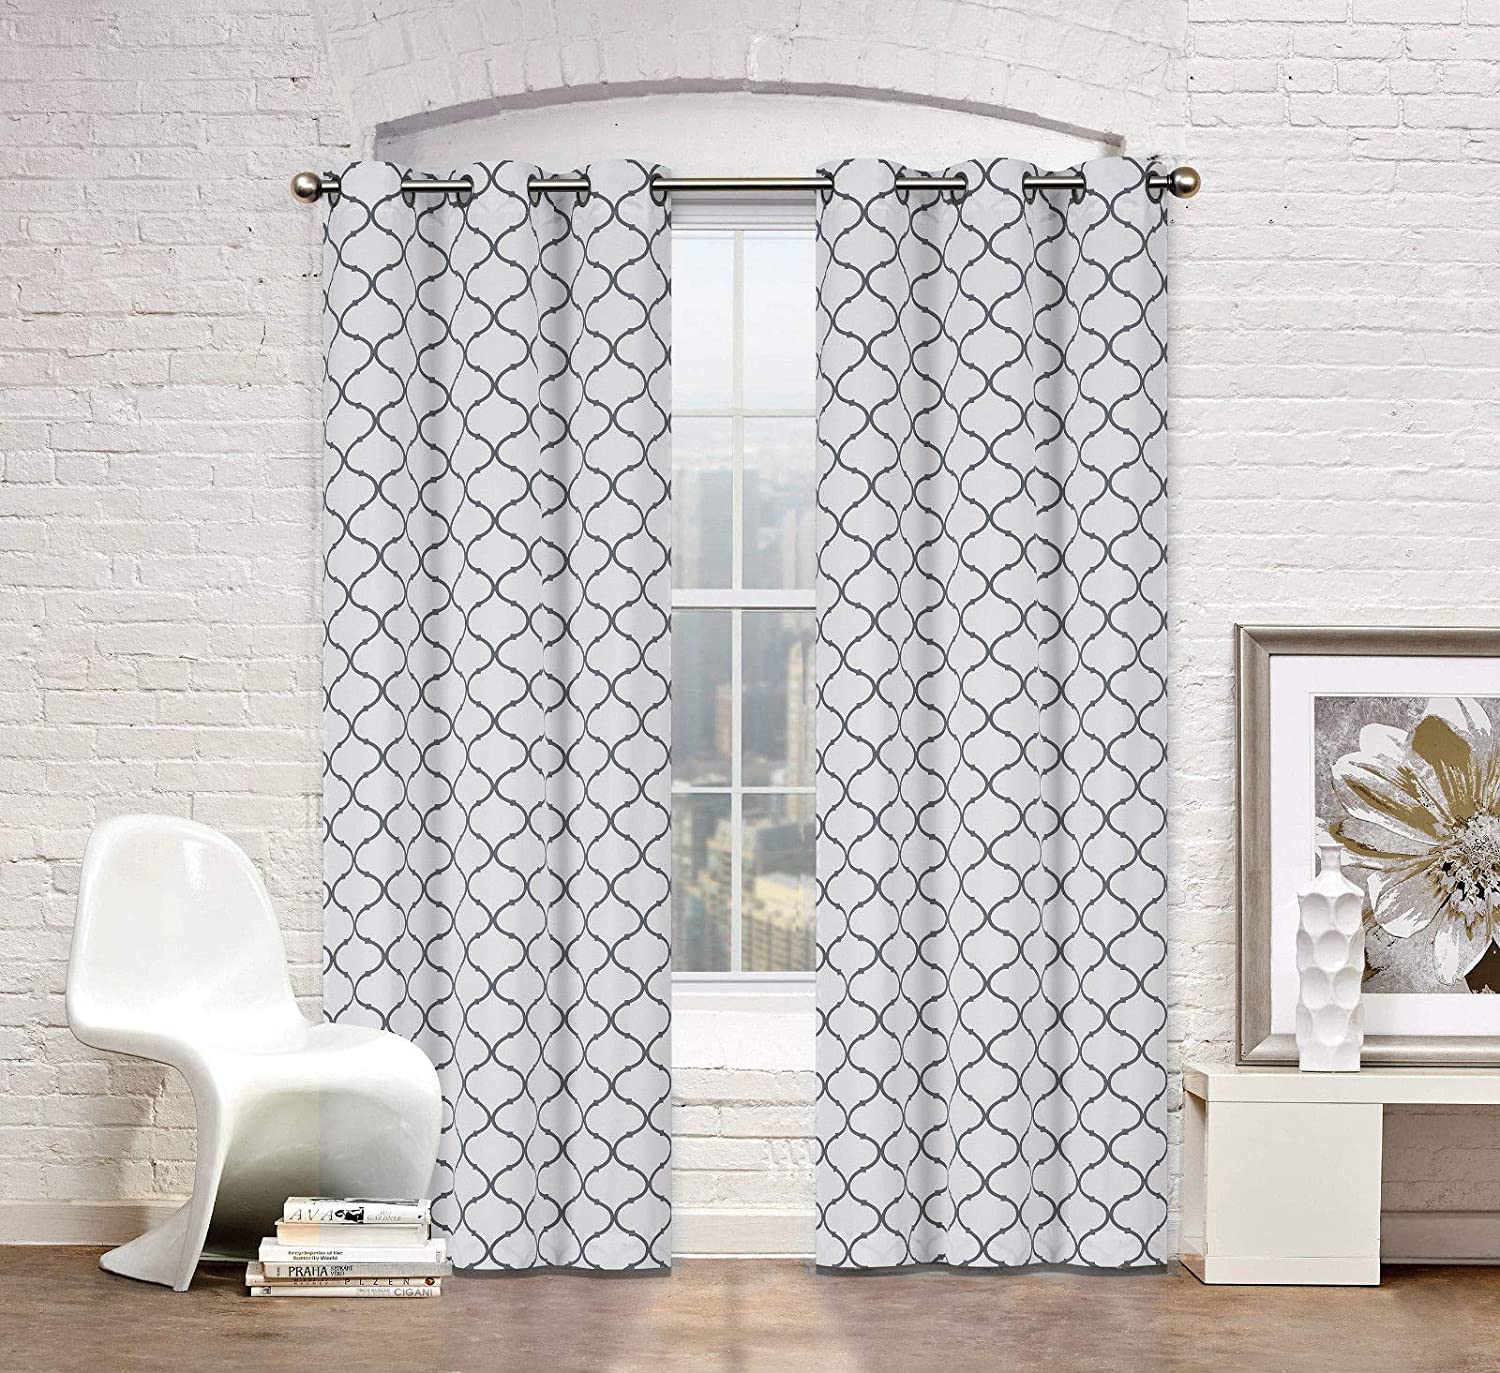 2 Pack: Regal Home Collections Premium Trellis Grommet Curtain Panels - Assorted Colors (Gray)